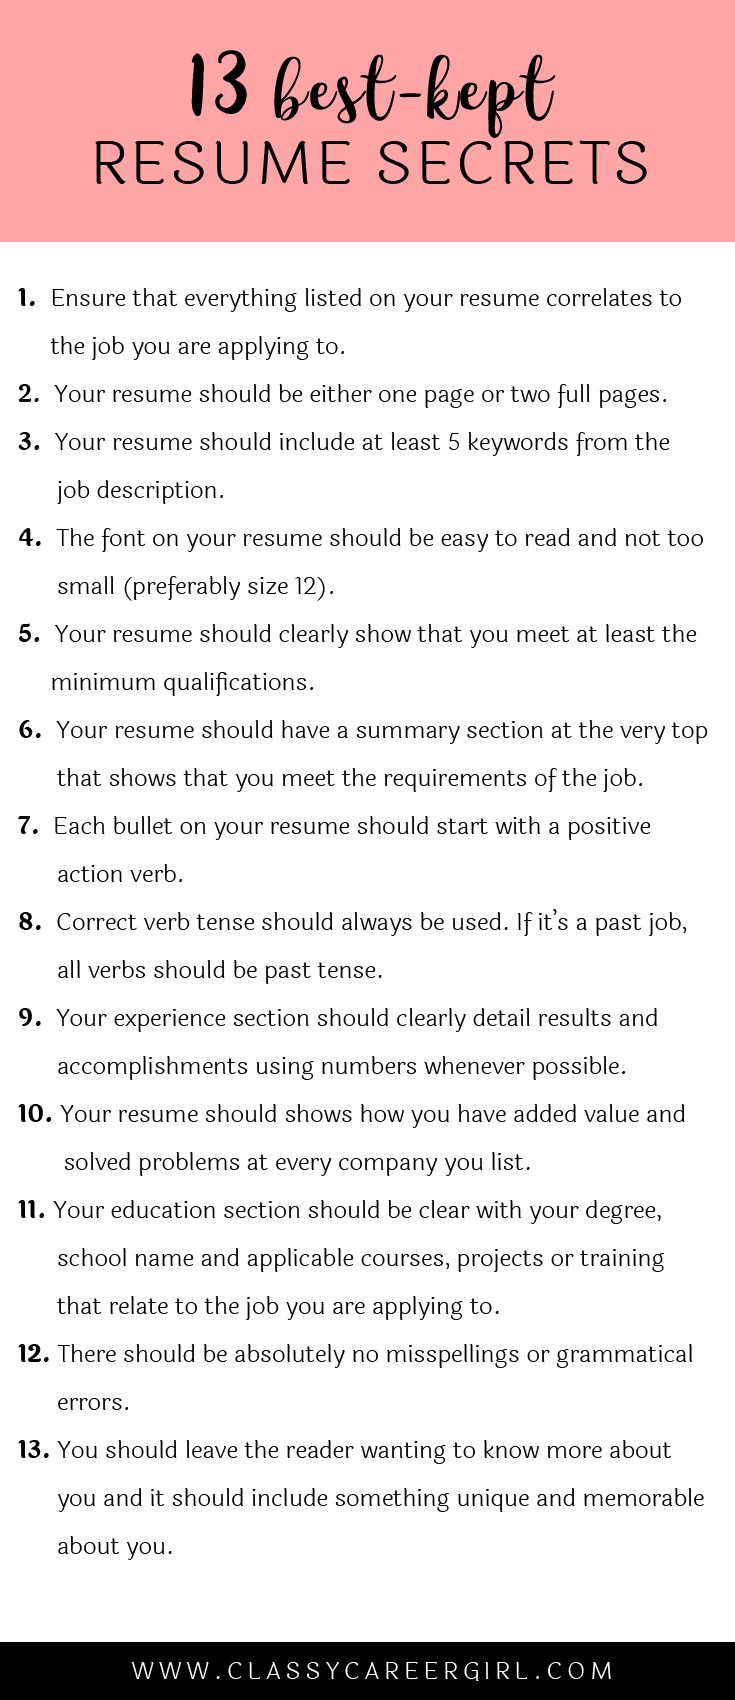 Opposenewapstandardsus  Terrific  Ideas About Resume On Pinterest  Cv Format Resume Cv And  With Goodlooking Some Hiring Managers Will Toss Your Resume Out If You Dont Know These  With Cute Resume Builder Military Also Fashion Resume Templates In Addition Retail Management Resume Examples And Resume Skills And Abilities Example As Well As Resume Template For Microsoft Word Additionally Resume College Graduate From Pinterestcom With Opposenewapstandardsus  Goodlooking  Ideas About Resume On Pinterest  Cv Format Resume Cv And  With Cute Some Hiring Managers Will Toss Your Resume Out If You Dont Know These  And Terrific Resume Builder Military Also Fashion Resume Templates In Addition Retail Management Resume Examples From Pinterestcom